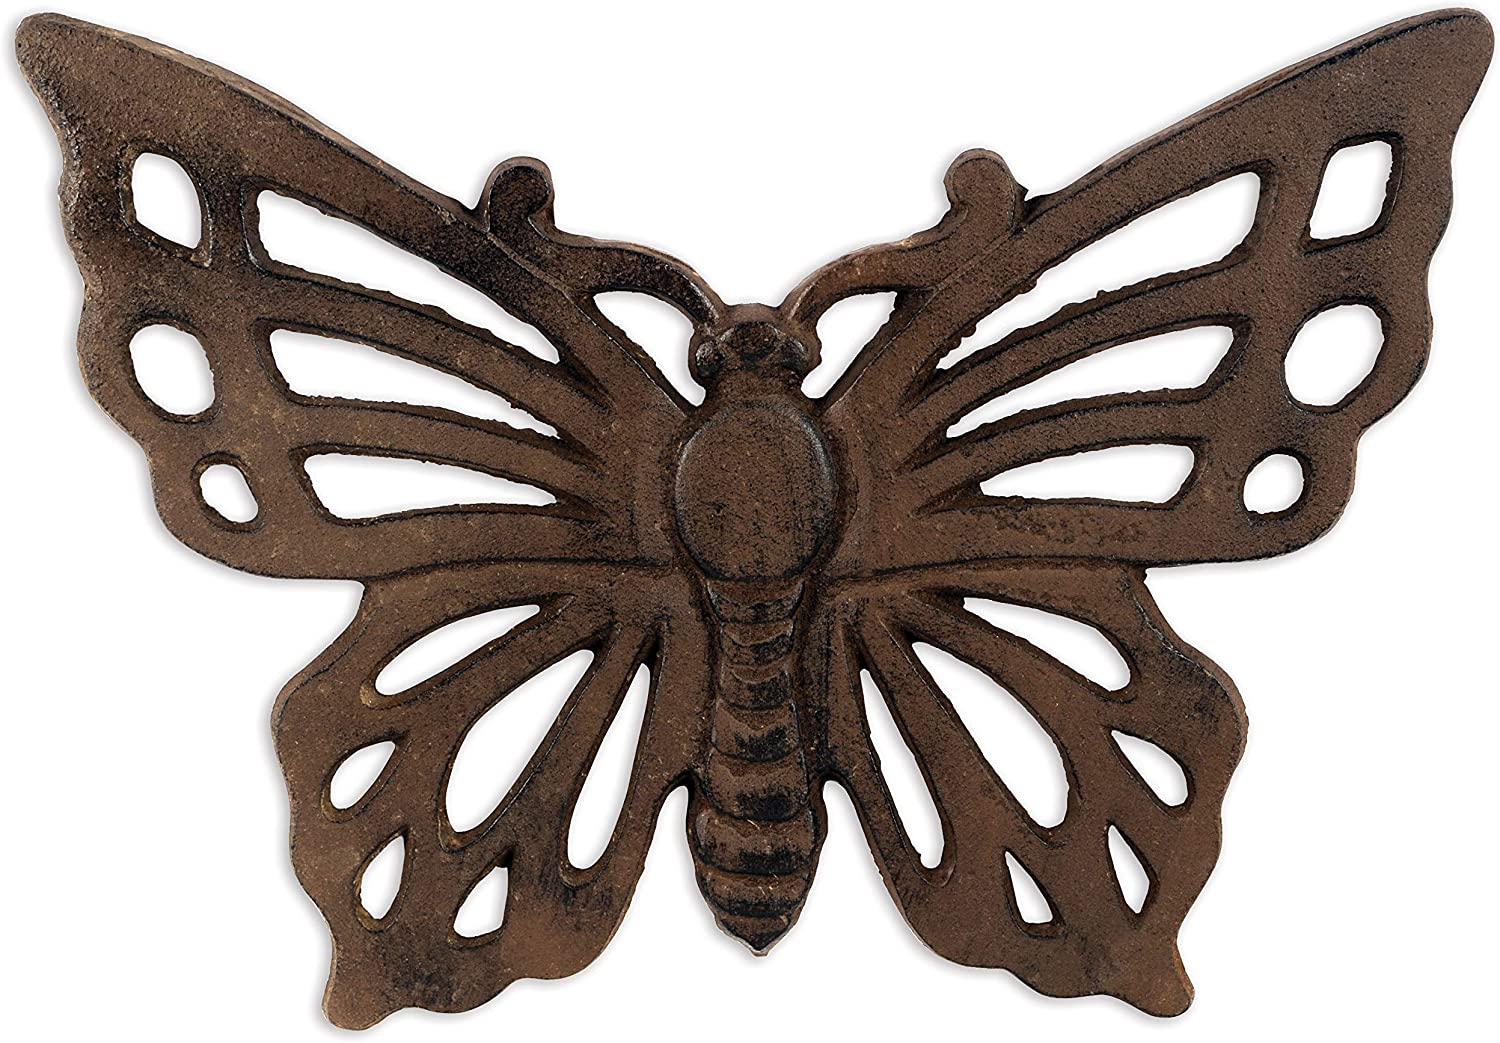 Sunset Vista Designs Garden Cast Iron Stepping Stone - Butterfly